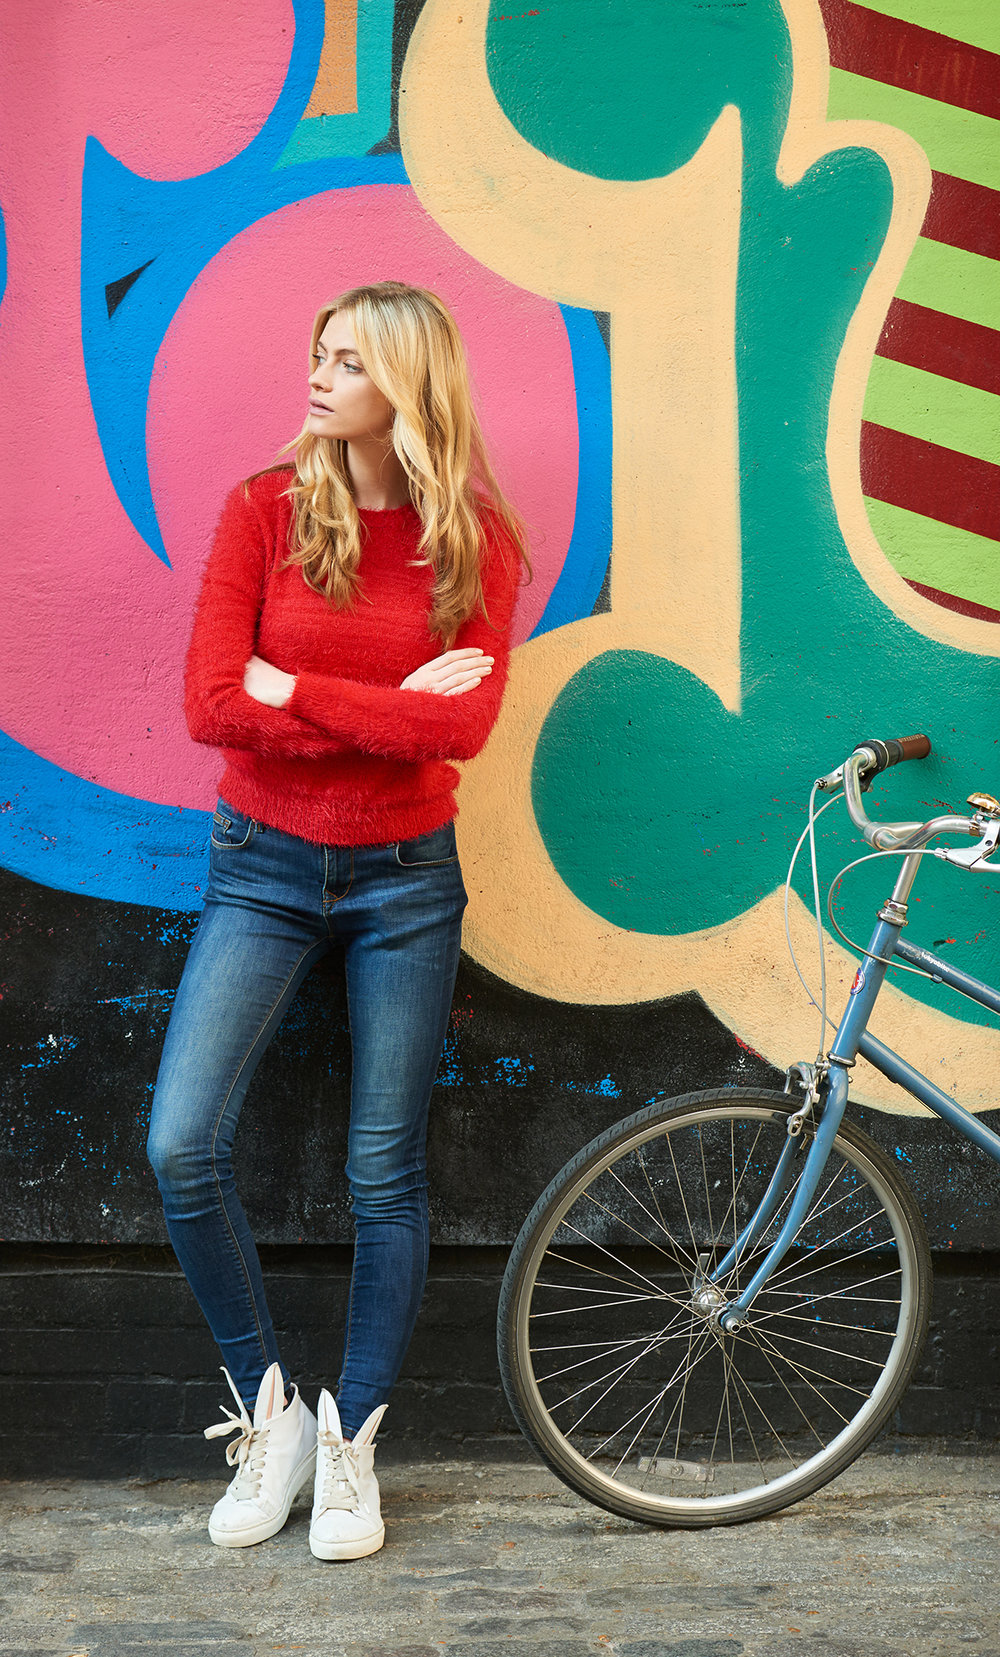 lifestyle photography  of a female model with a bicycle